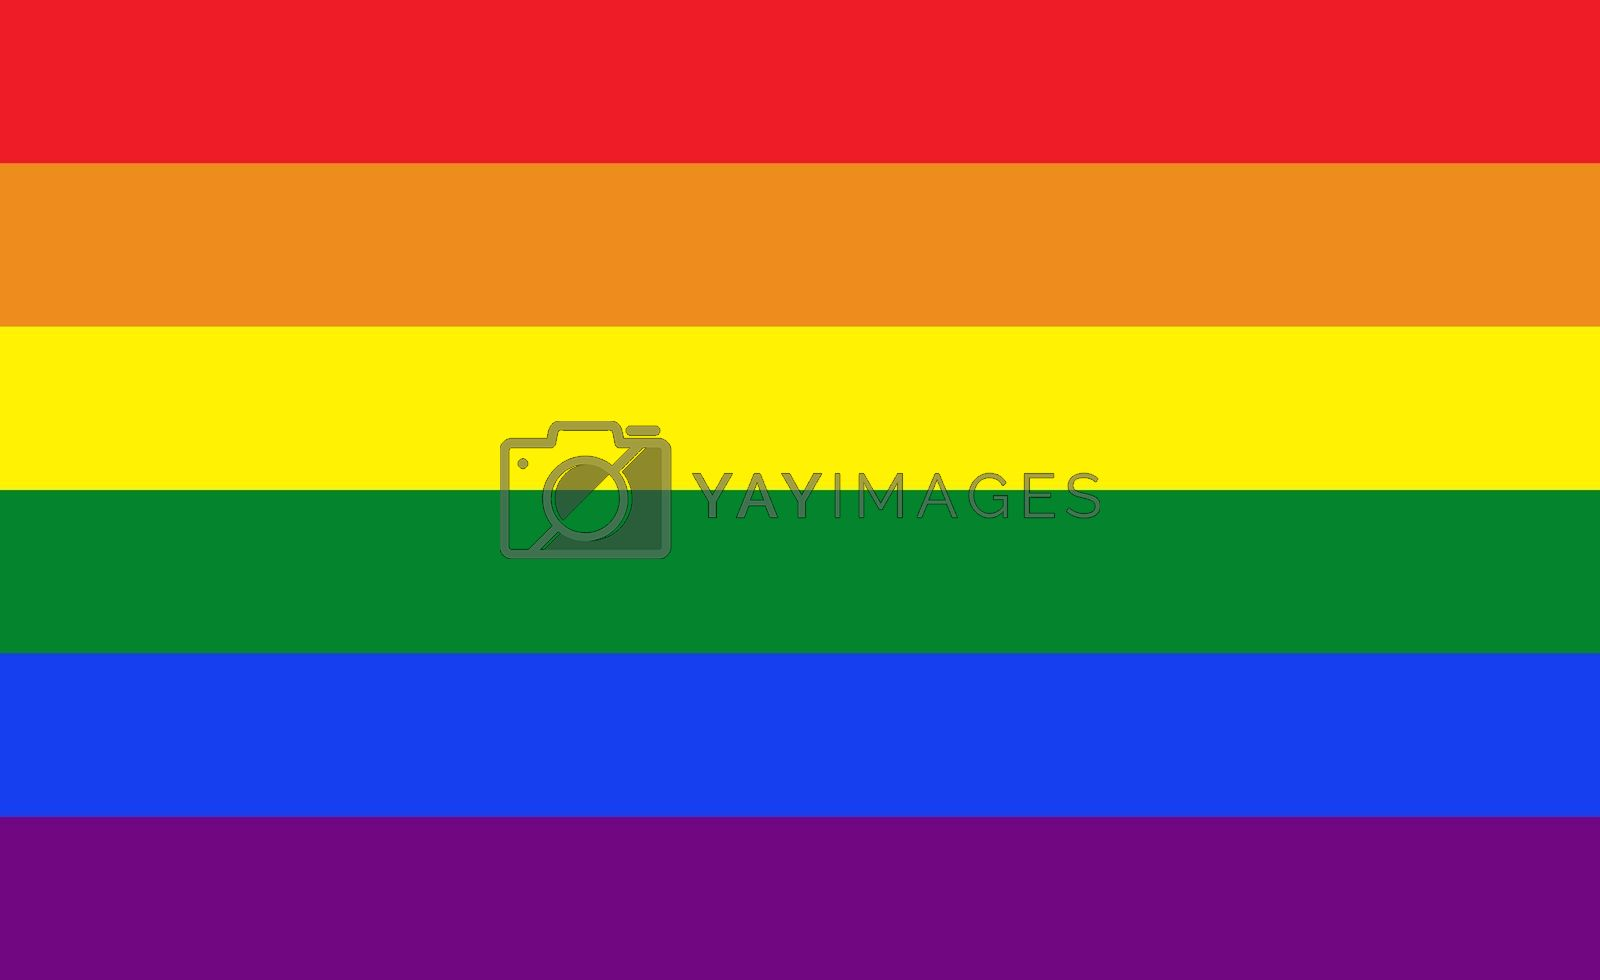 Pride flag illustration. Lgbt community symbol in rainbow colors. Vector backdrop for your design.